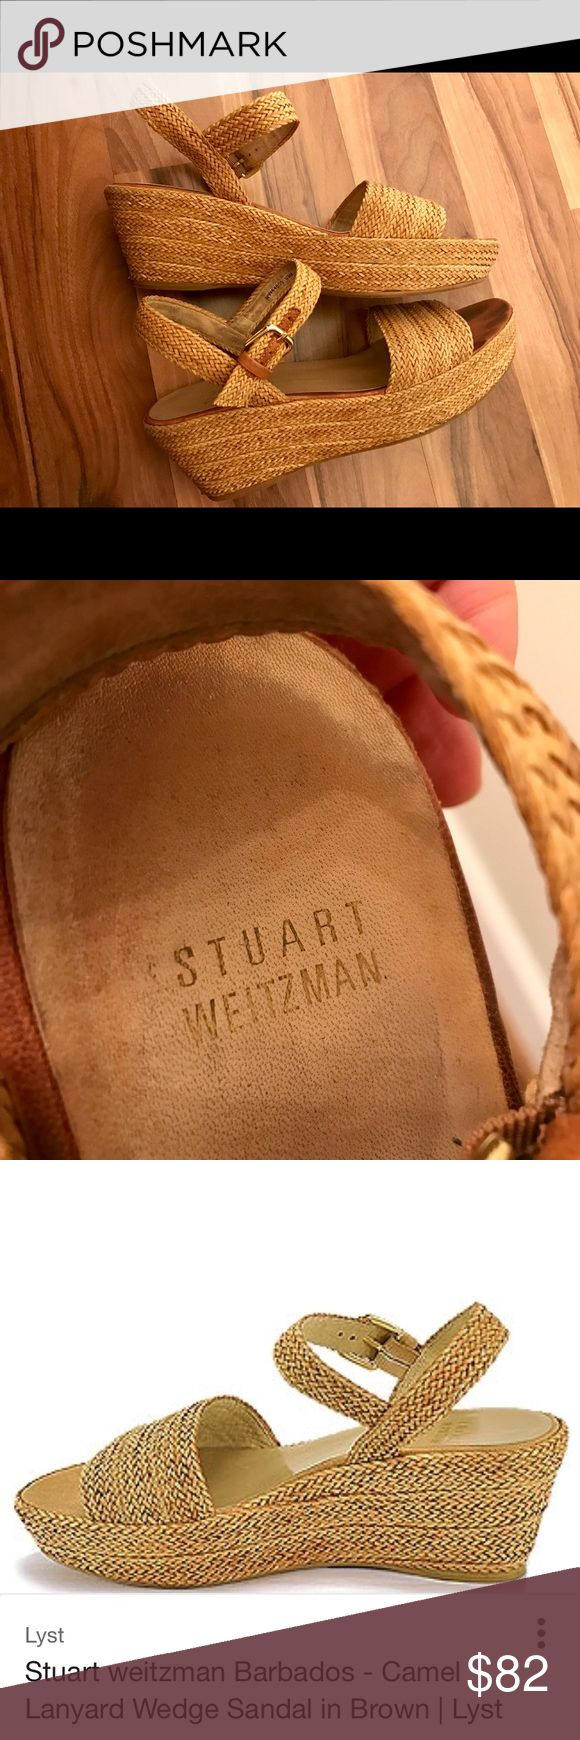 Stuart Weitzman 'Barbados' Camel Wedge Sandal 9.5 Genuine, ultra comfortable Stuart Weitzman sandals! A classic find - wearable with any warm-weather outfit and for any occasion. Medium wedge (about 2.5 inches) and slight slope. Made of soft 'lanyard' wicker type material. Super durable. Adjustable ankle strap with darker brown detail. Rubber sole fully intact. No signs of wear except for toe marks. Sz 9.5 and could also fit a 10. Stuart Weitzman Shoes Wedges